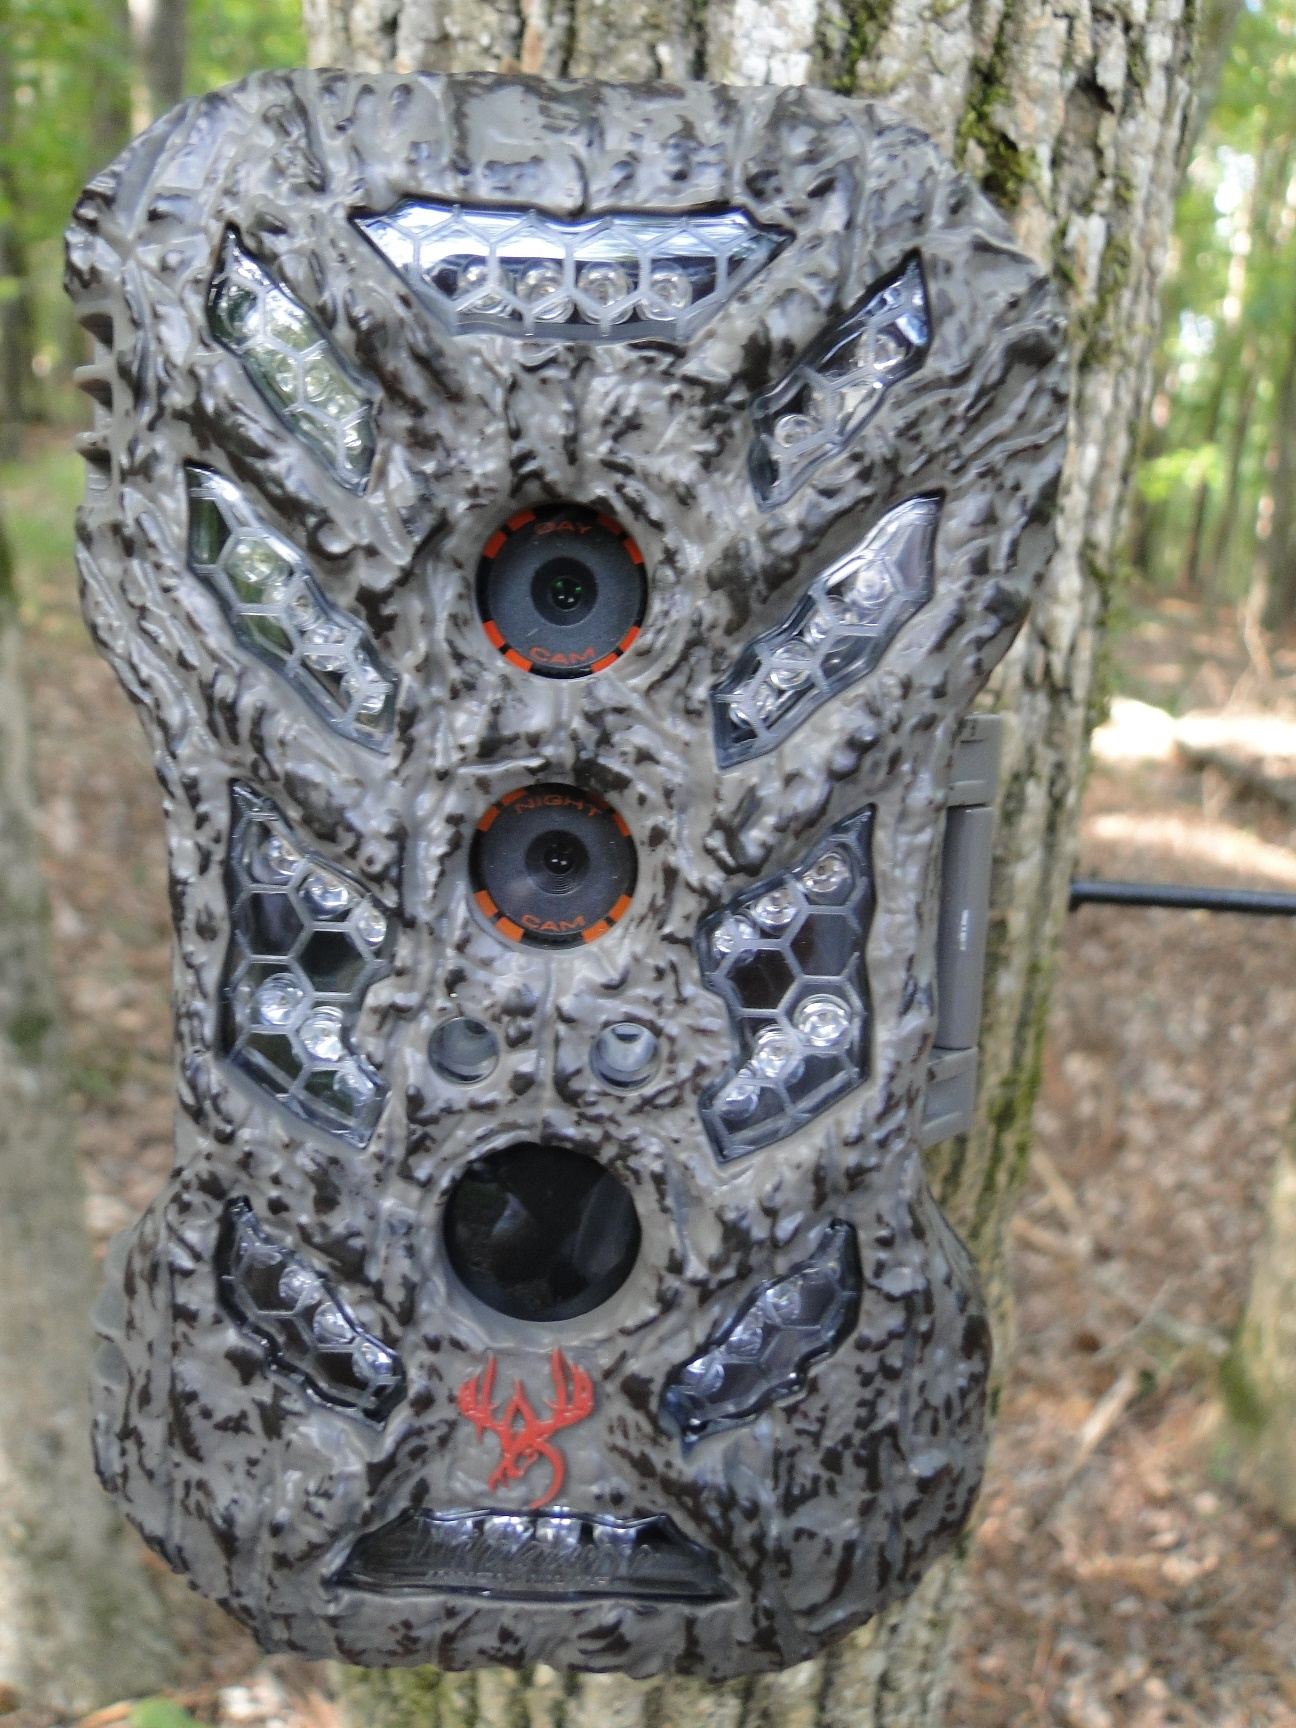 2017 Wildgame Silent Crush 20 Camera Review